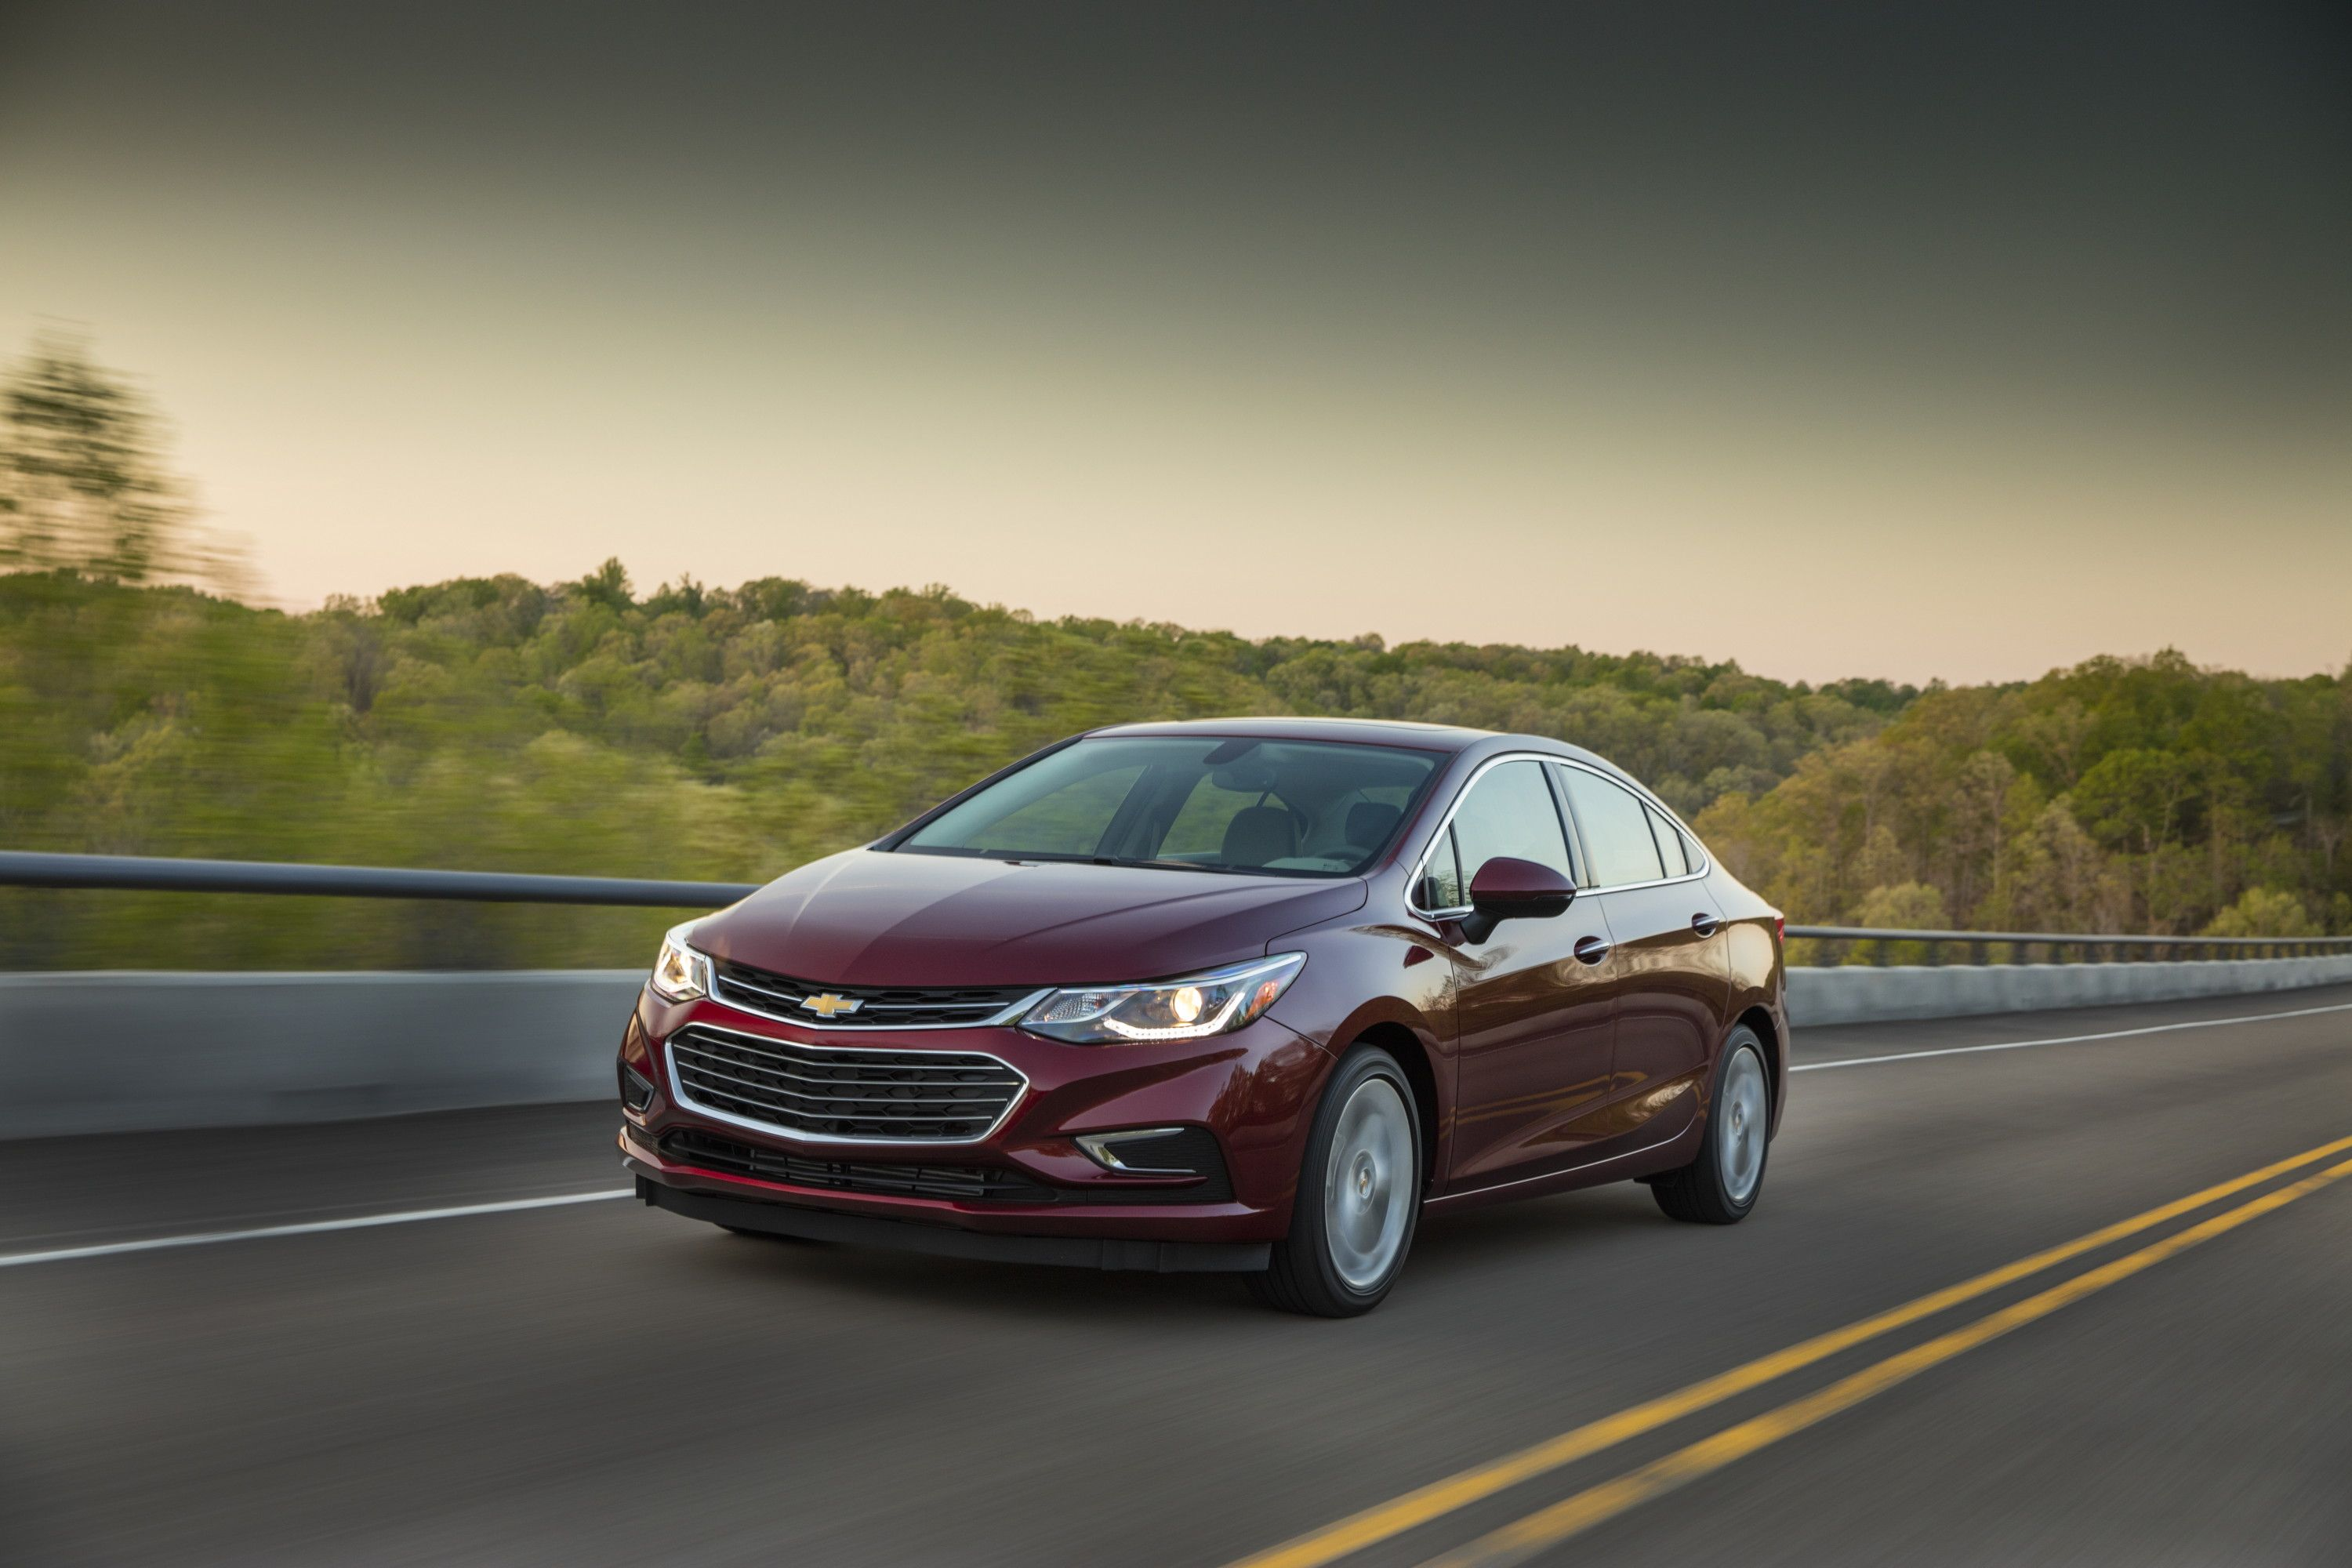 Chevrolet Cruze Owners Manual: Drunk Driving